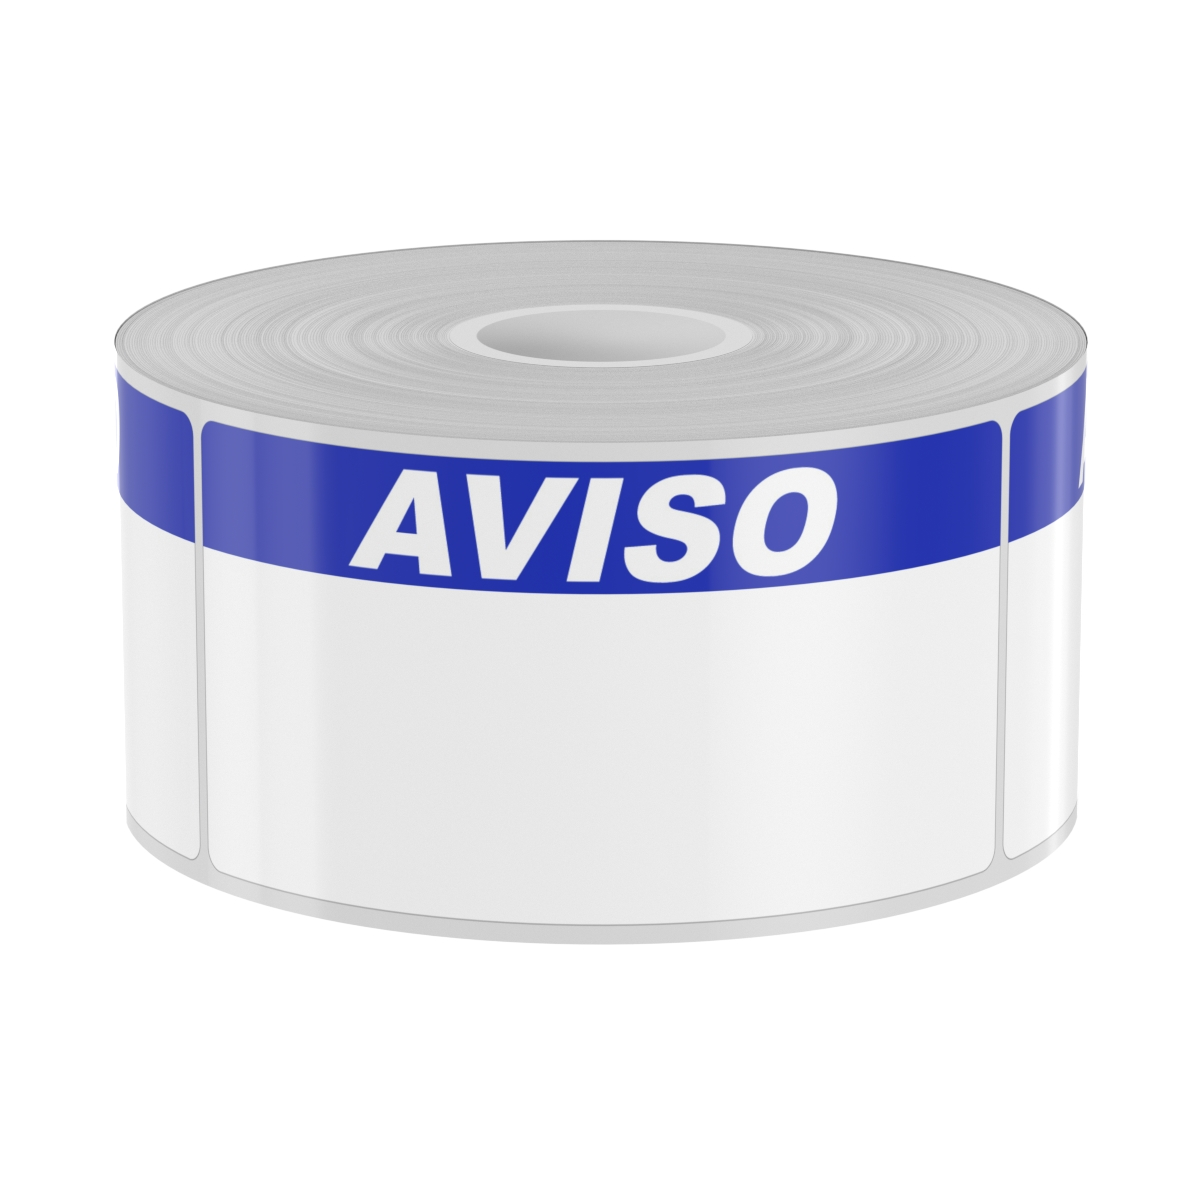 250 2in x 4in Labels with Blue AVISO Header